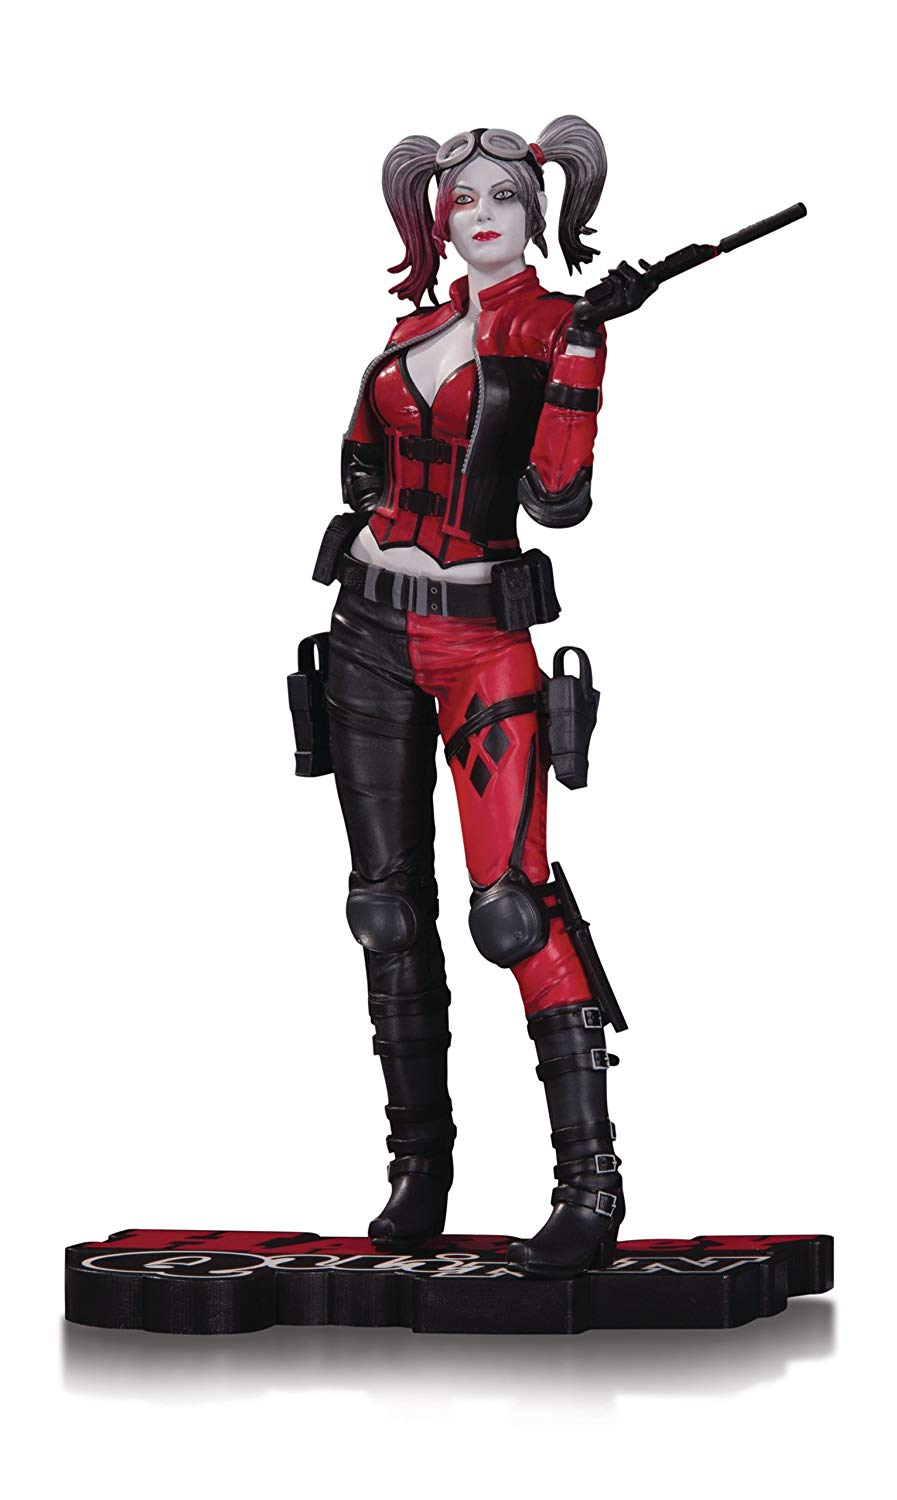 Harley quinn injustice clipart png free stock DC Collectibles Harley Quinn Injustice 2 Statue, Black/White/Red png free stock